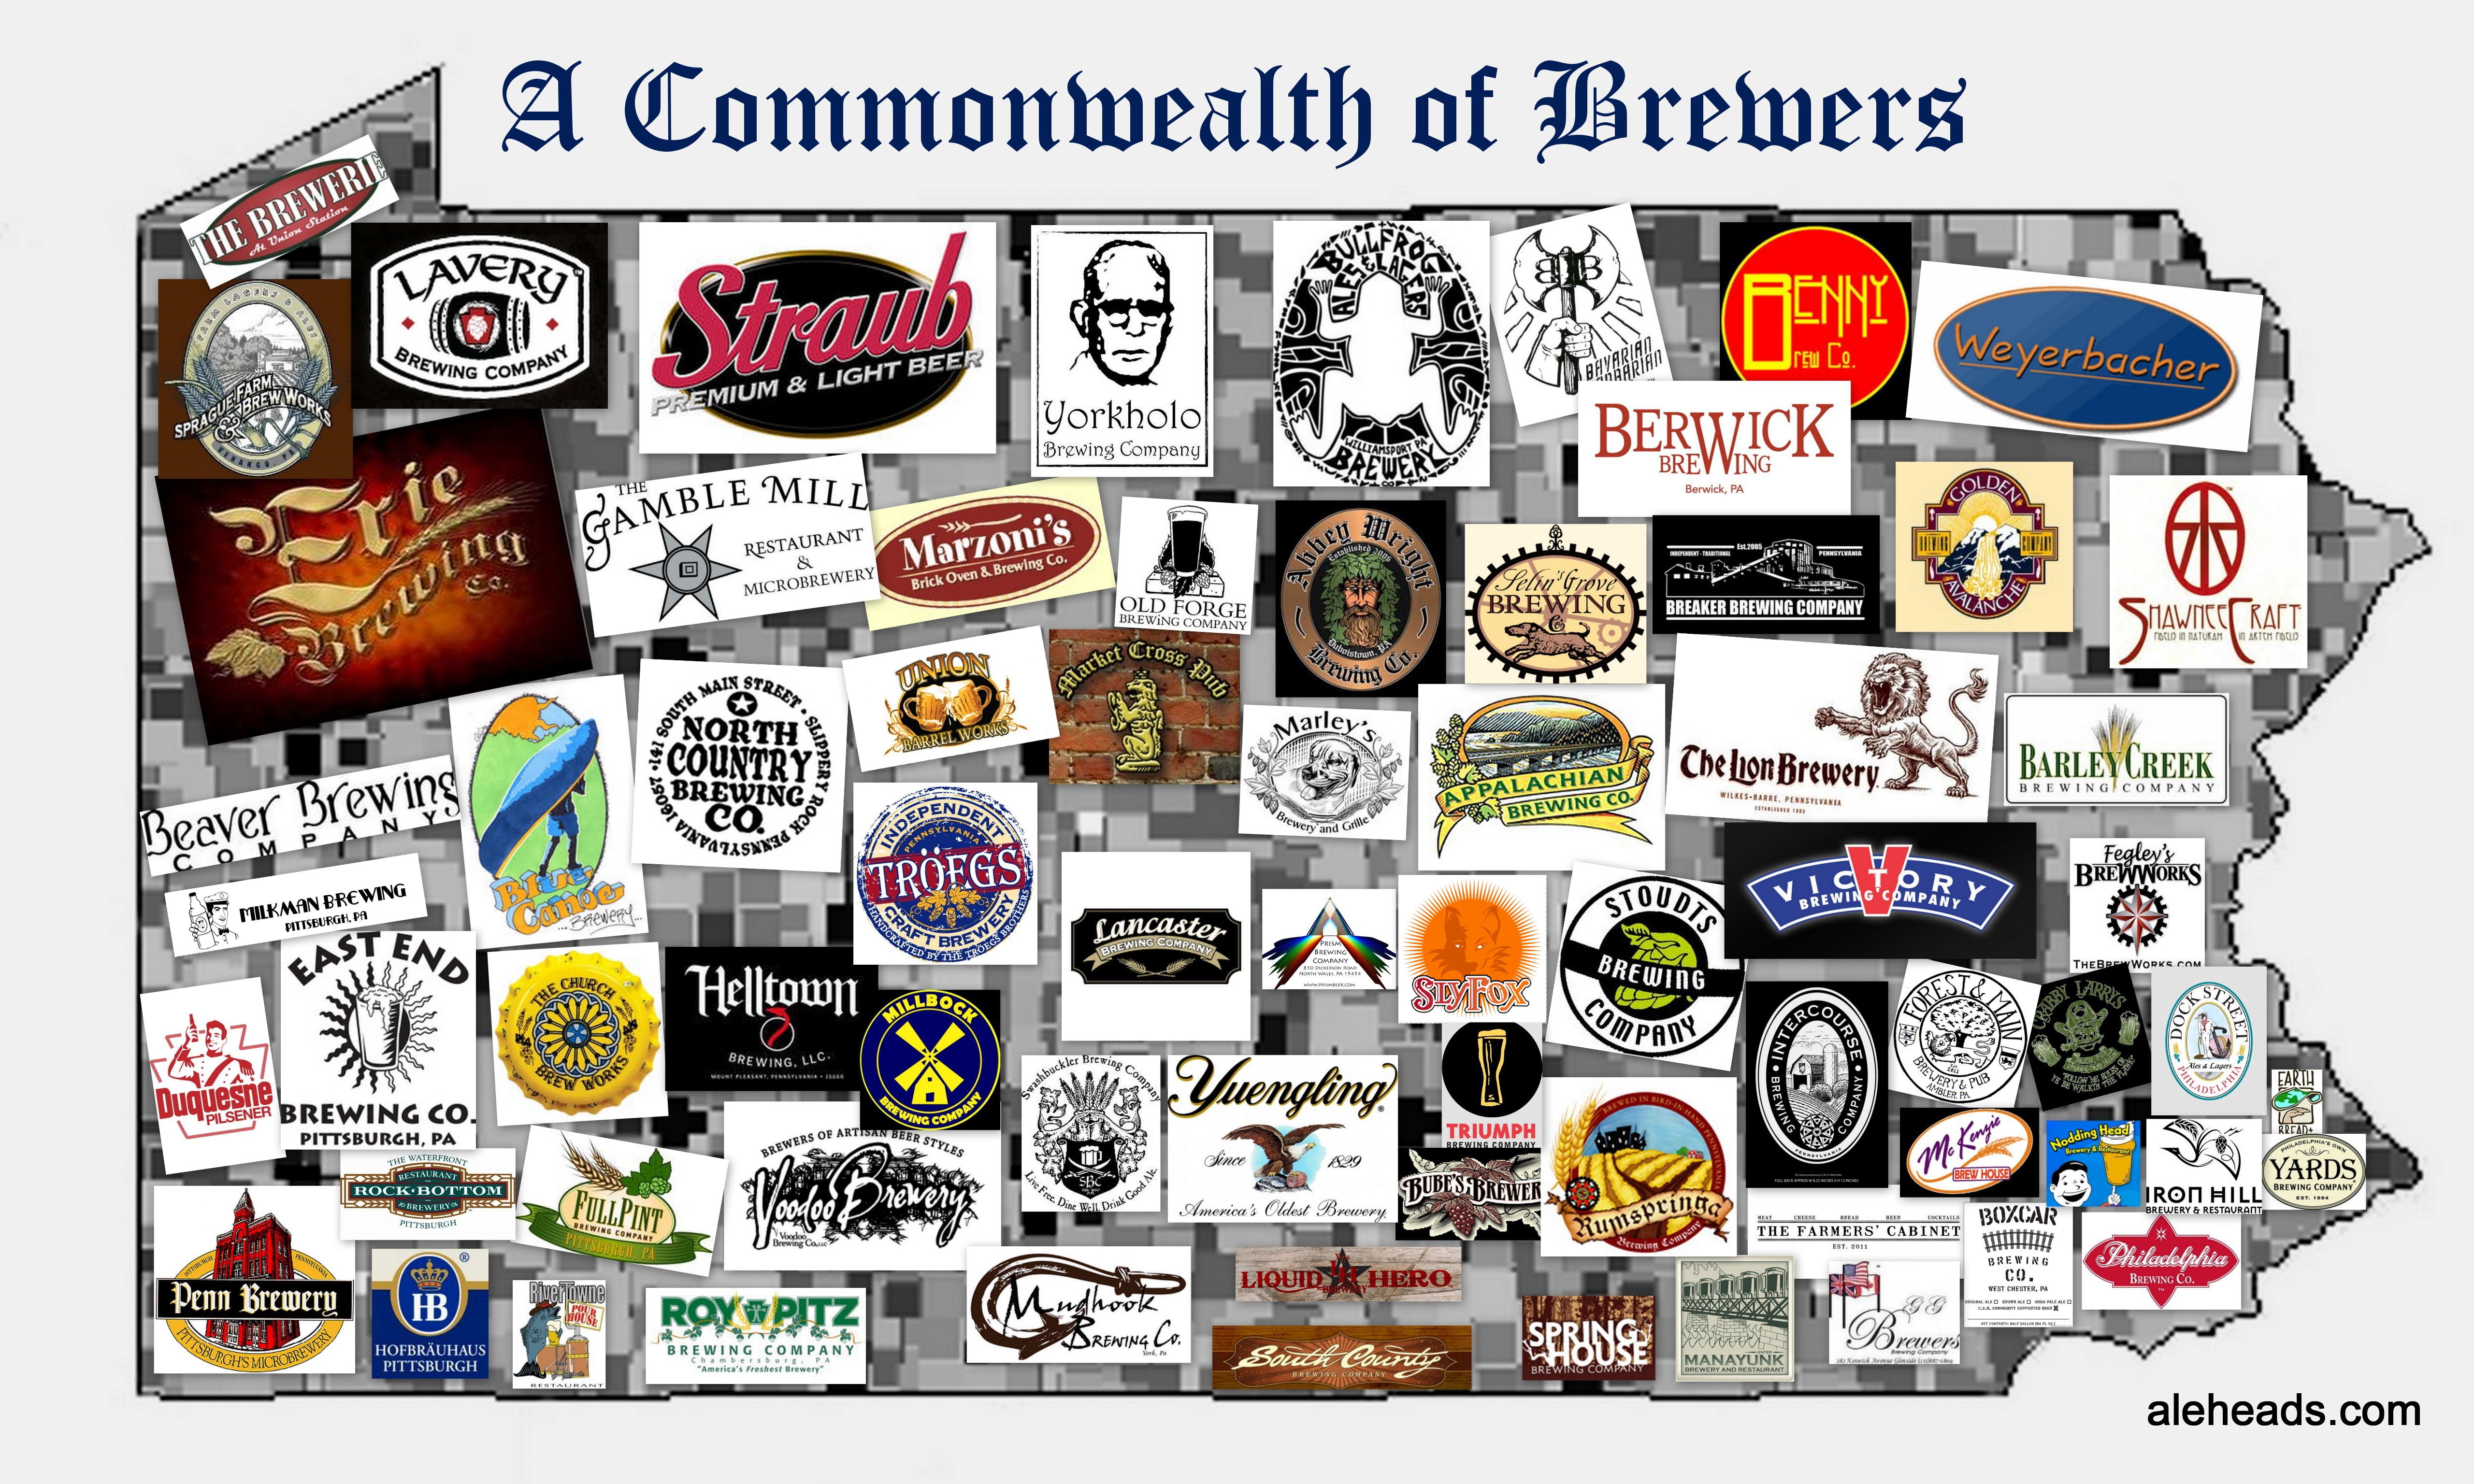 PENNSYLVANIA: A COMMONWEALTH OF BREWERS MAP | ALEHEADS